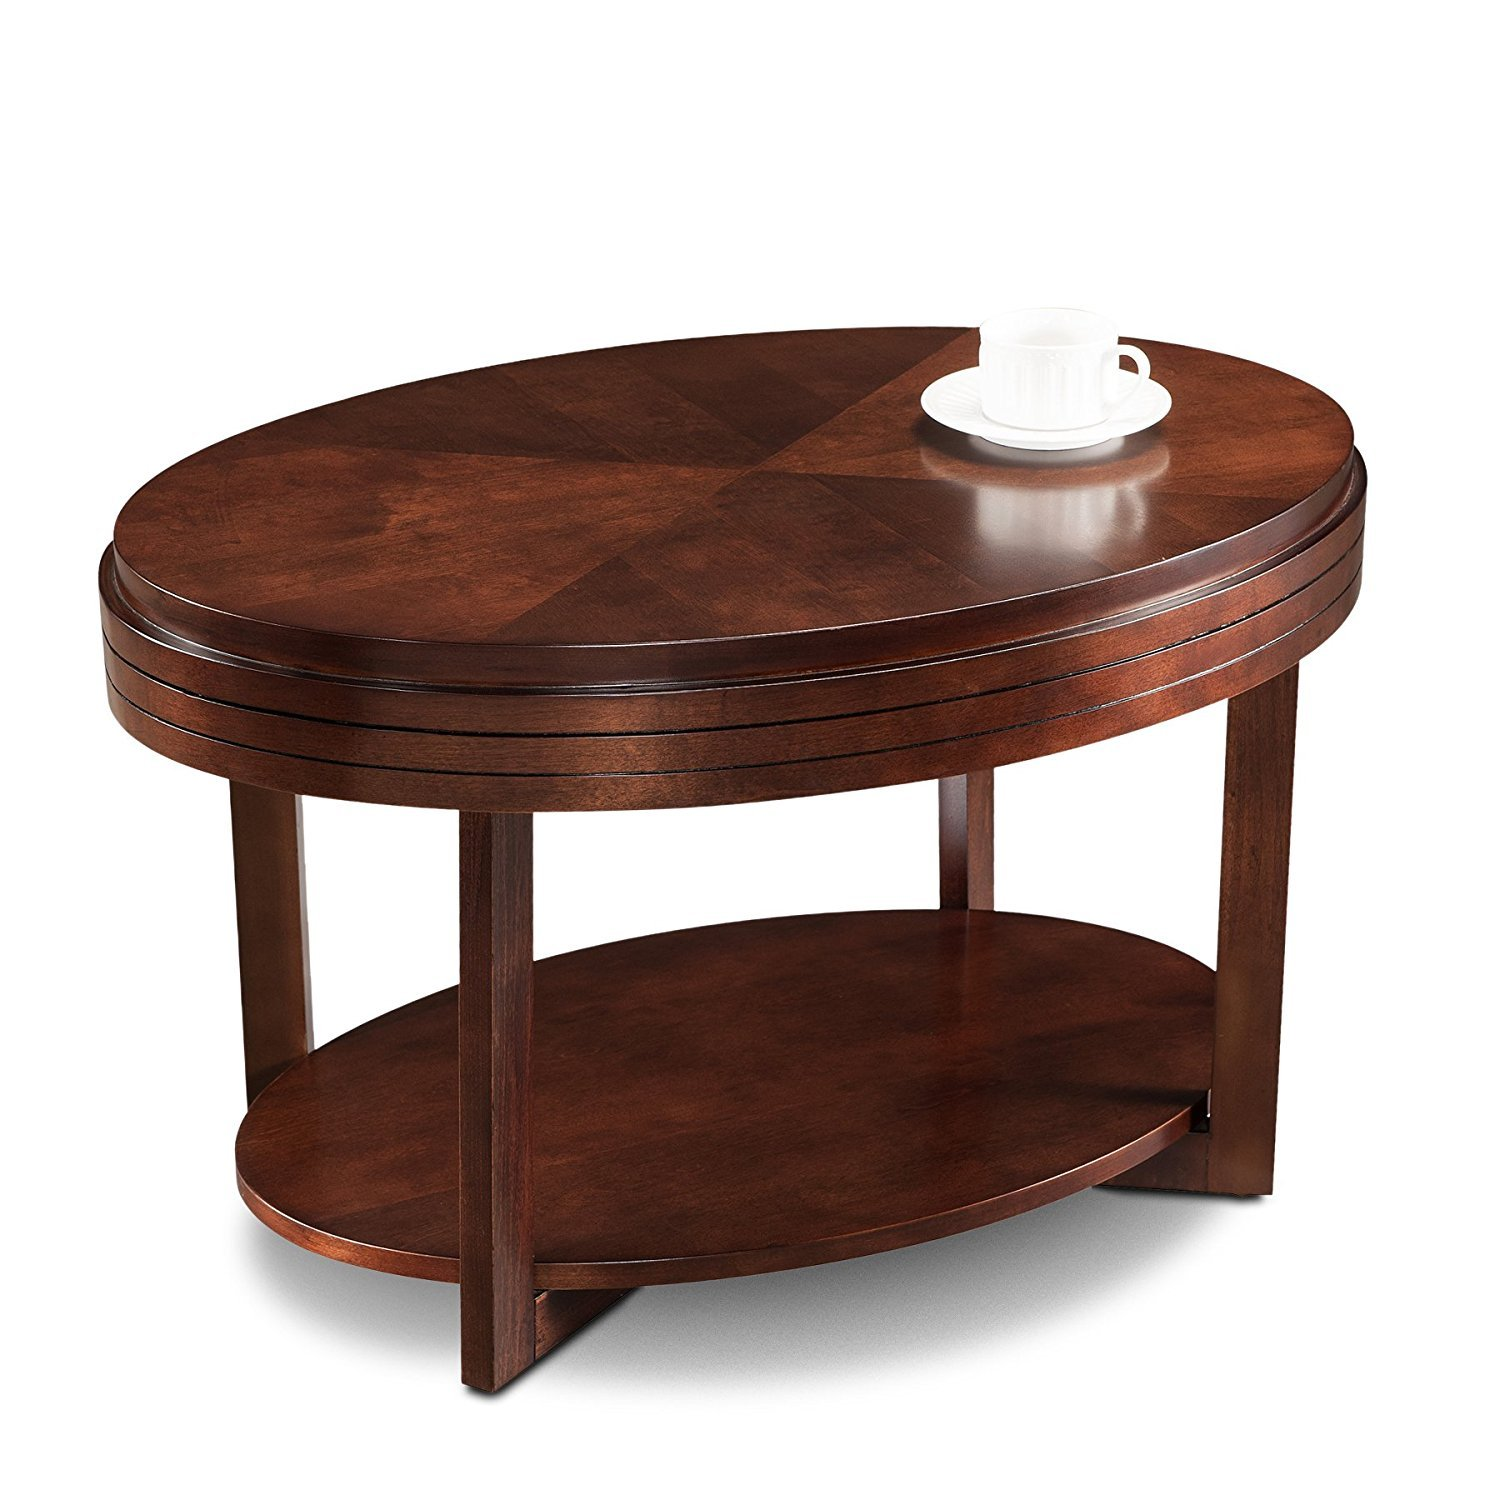 Table Ovale Design Oval Coffee Table With Storage Home Furniture Design